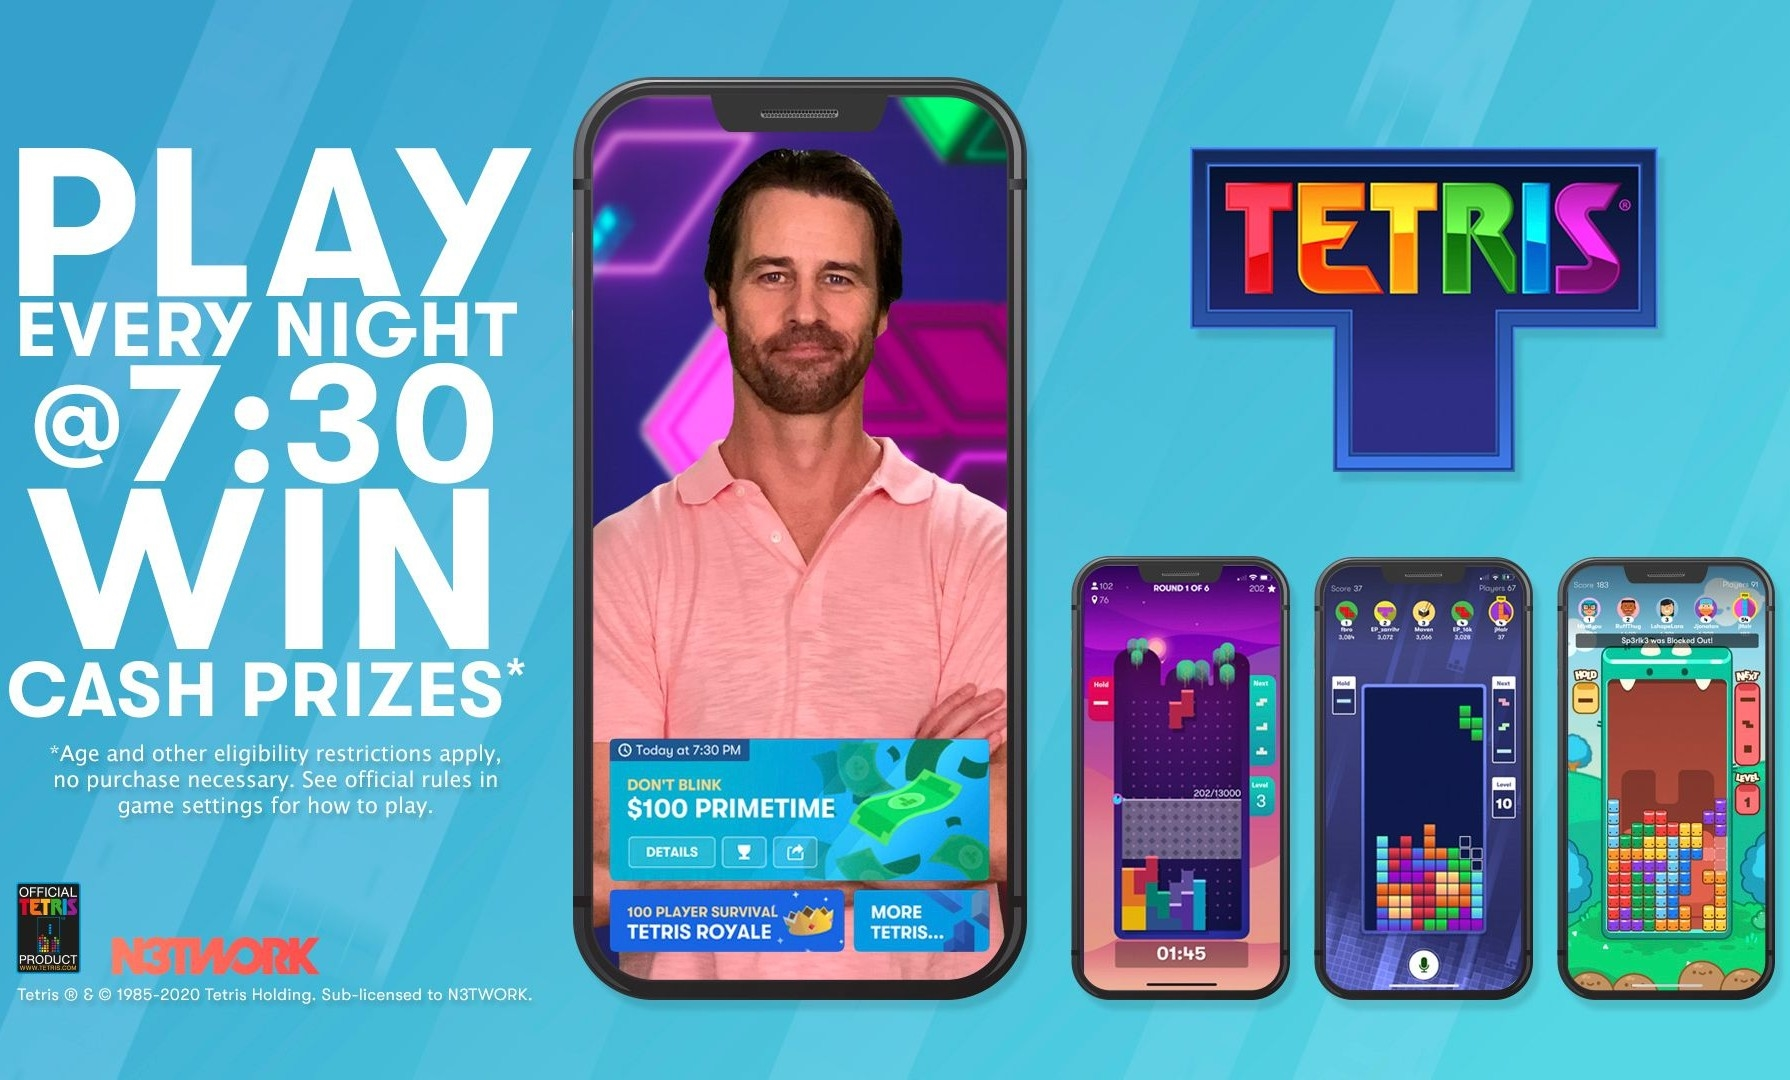 Tetris is now a daily game show with cash prizes | DeviceDaily.com